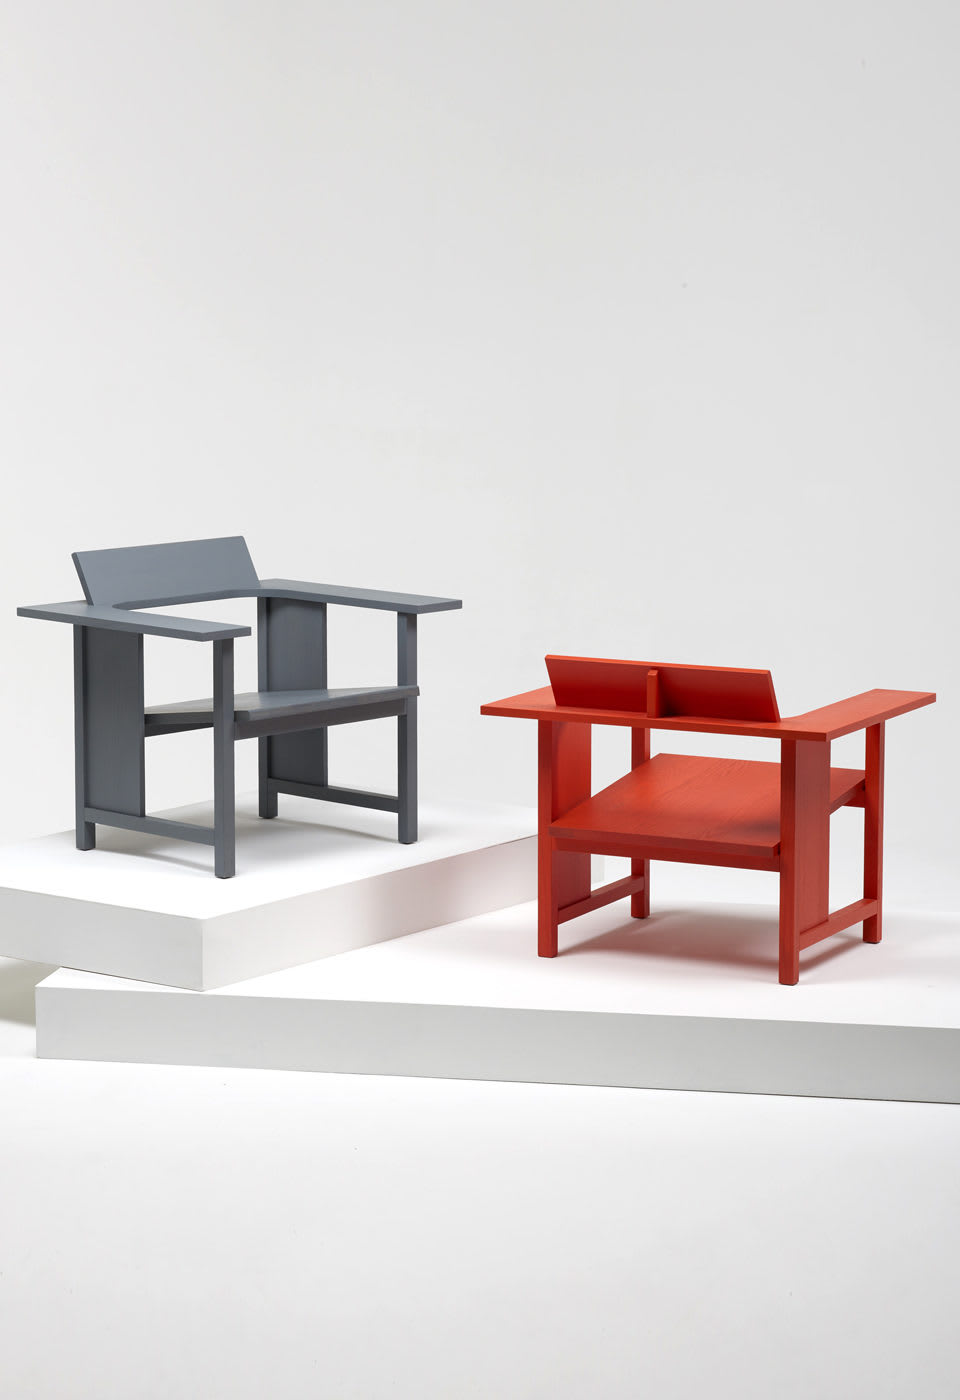 Chairs by Mattiazzi Italy seen at Sulwhasoo Flagship Store, Dosan-daero 45-gil - Clerici